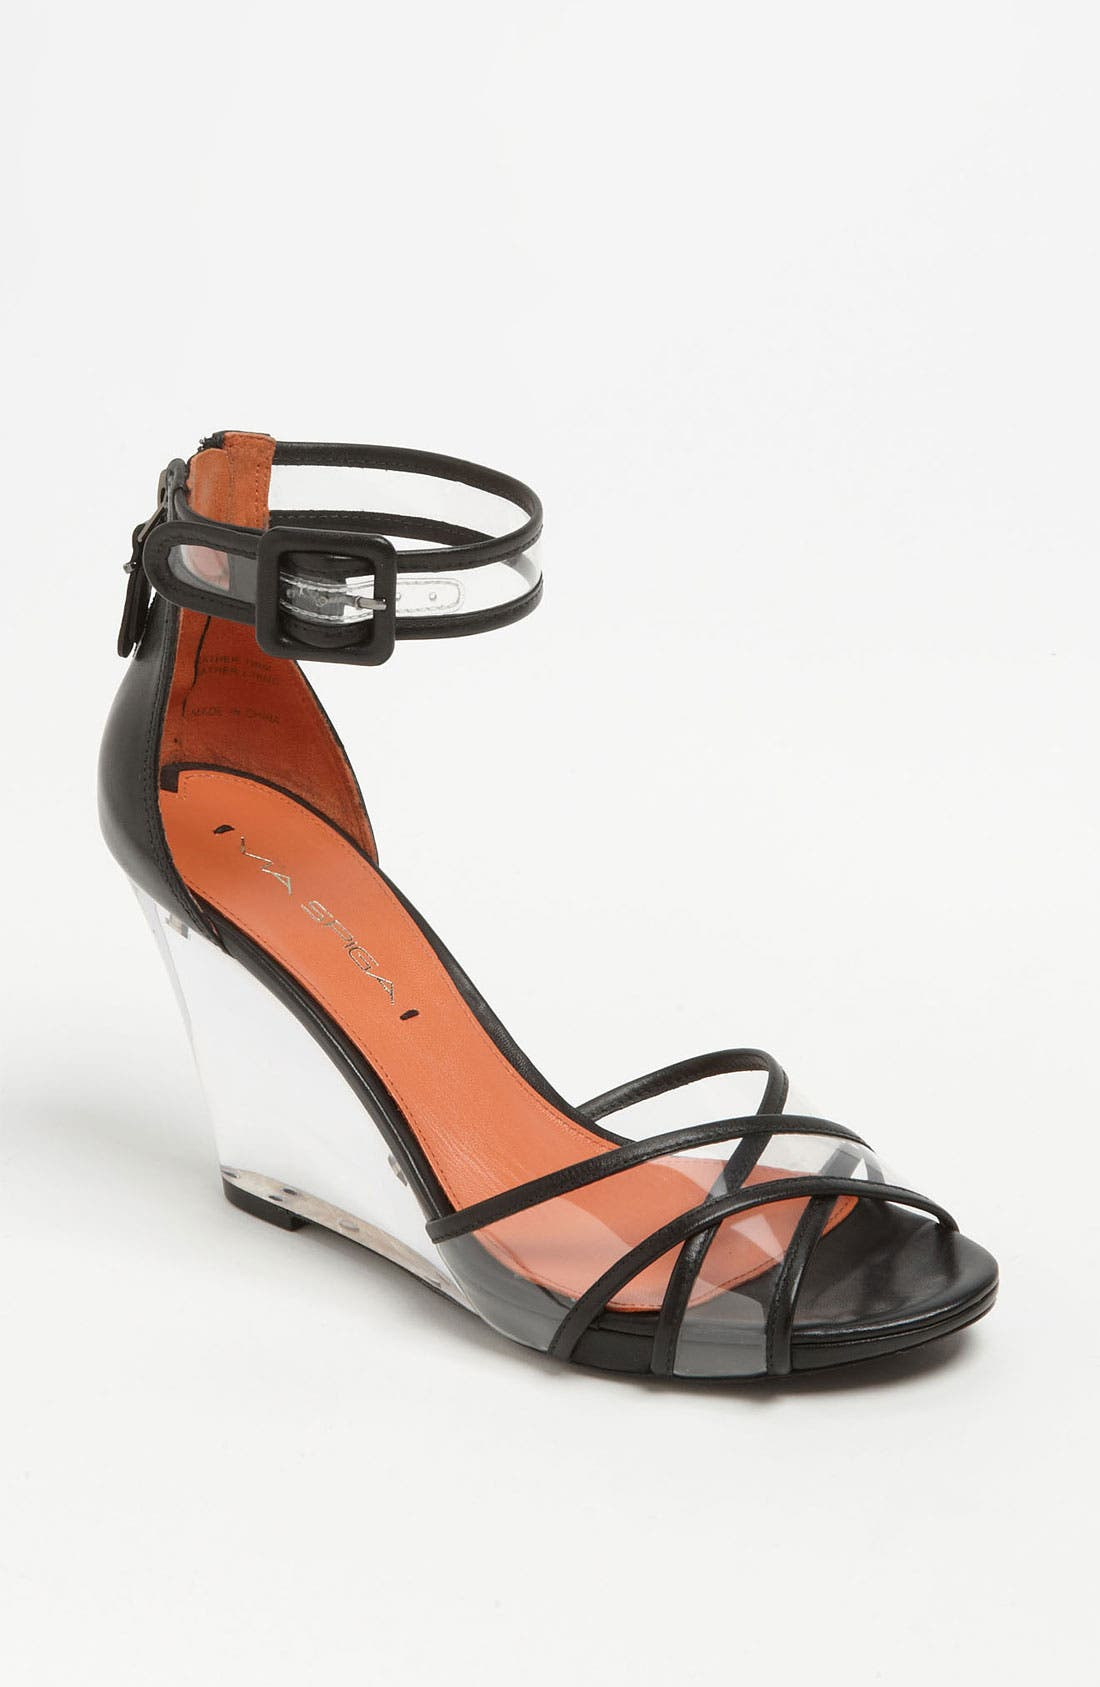 Alternate Image 1 Selected - Via Spiga 'Biana' Sandal